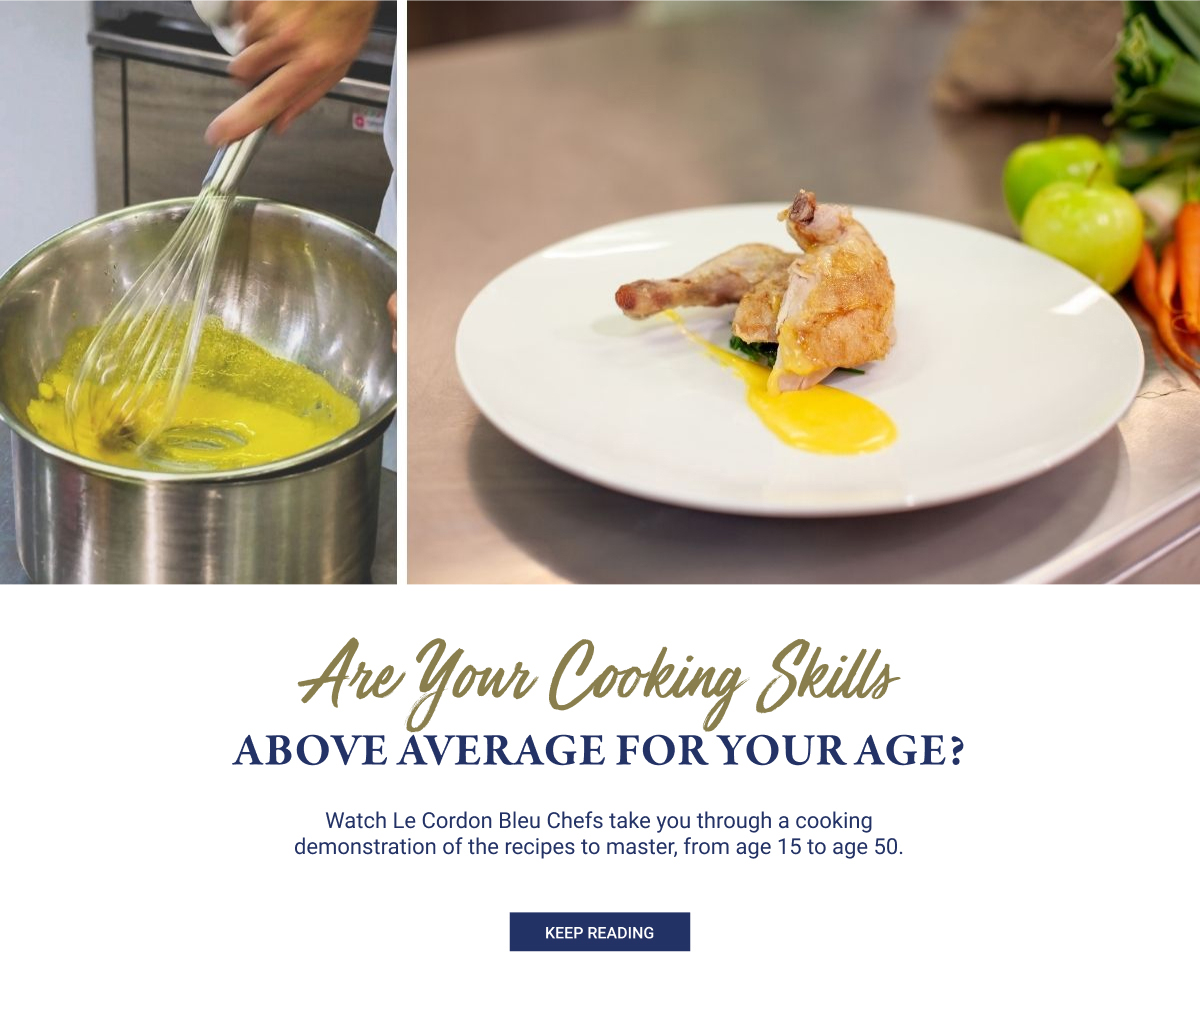 Are Your Cooking Skills Above Average for Your Age?